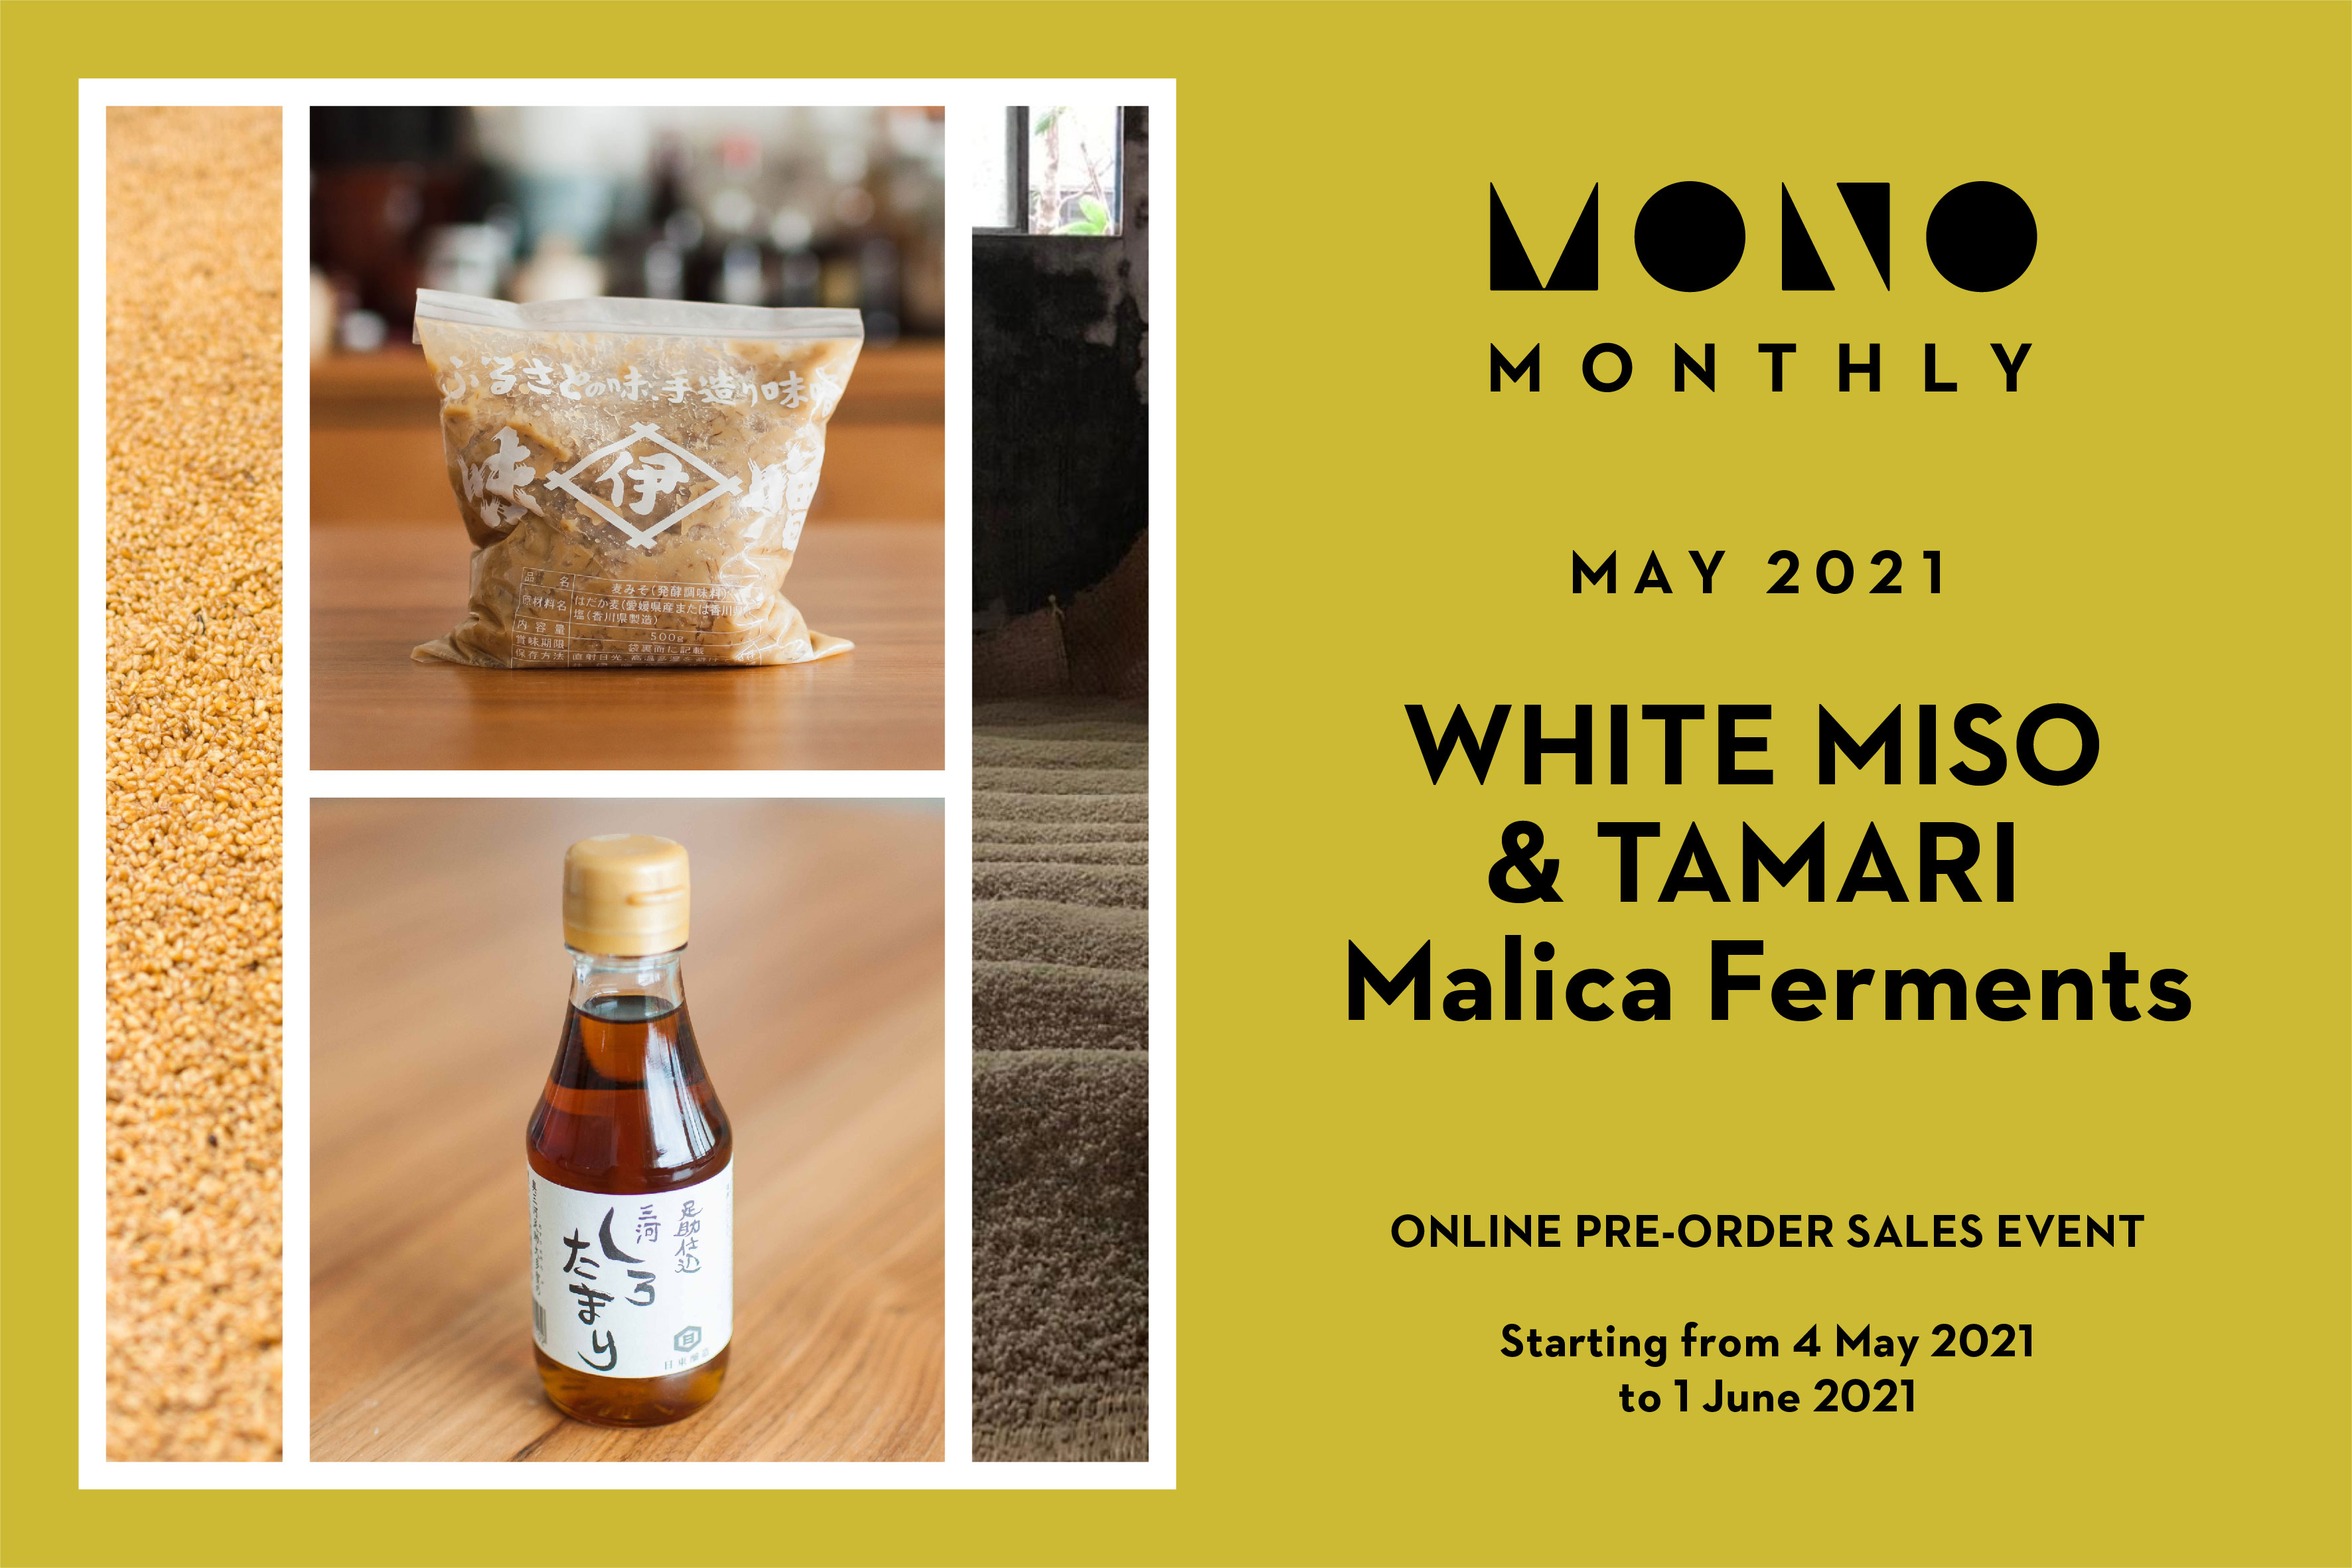 Mono Monthly White Miso and Tamari by Malica Ferments